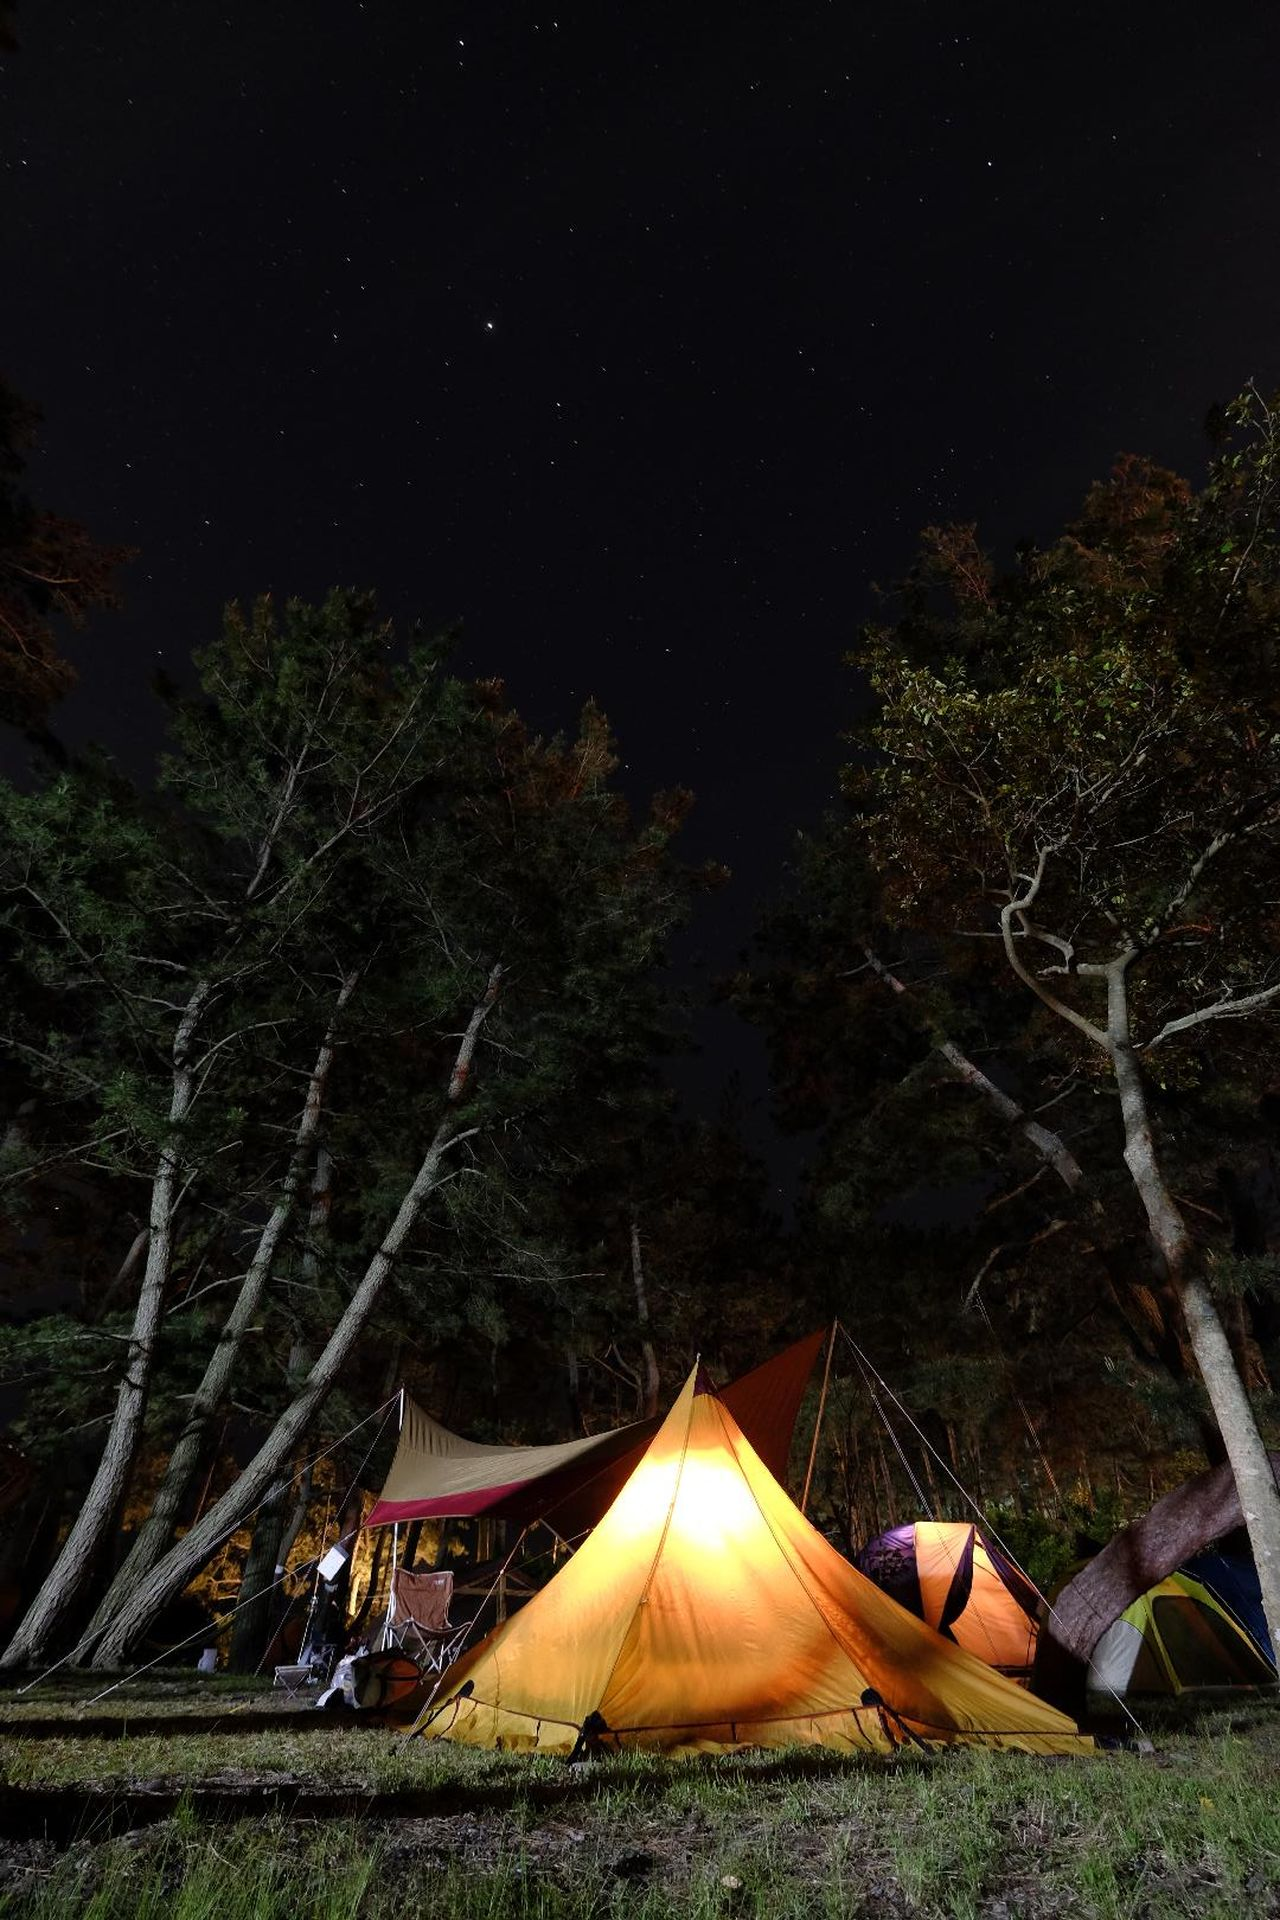 Camping Trip Night Outdoors